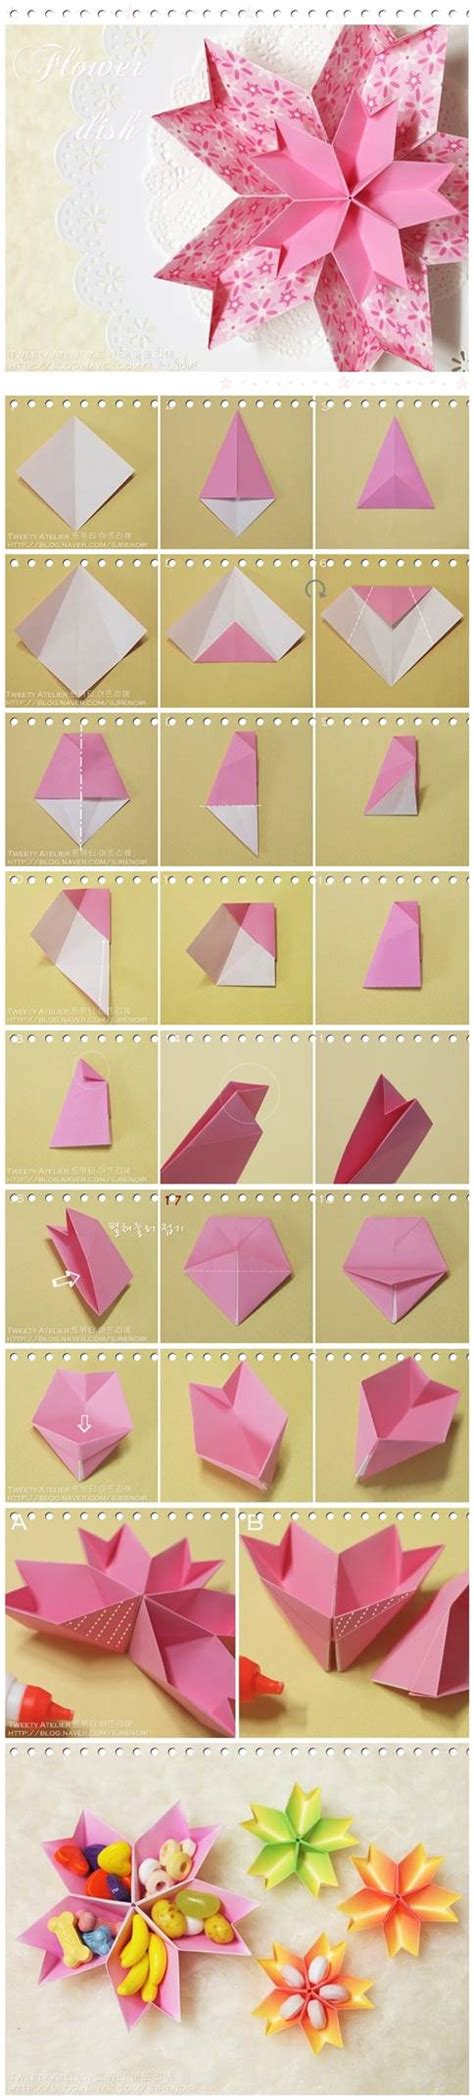 How To Make Paper Flowers Step By Step For - how to make origami flowers step by step breeds picture